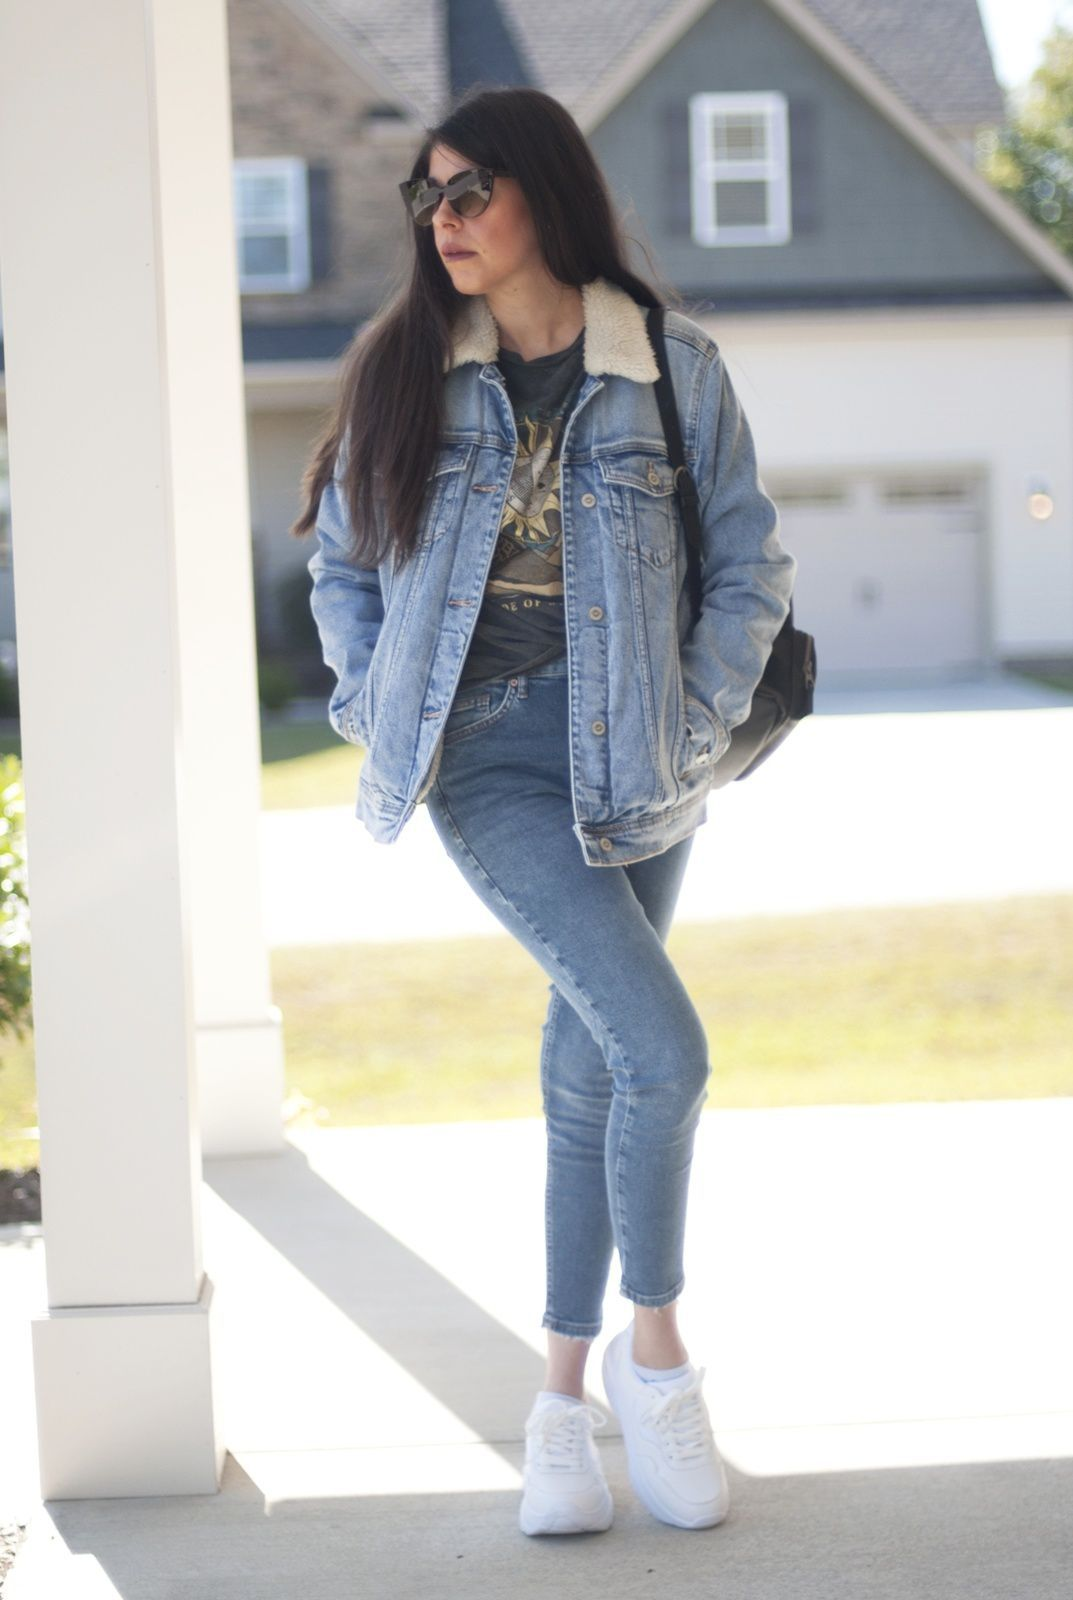 THE WINTER DENIM JACKET